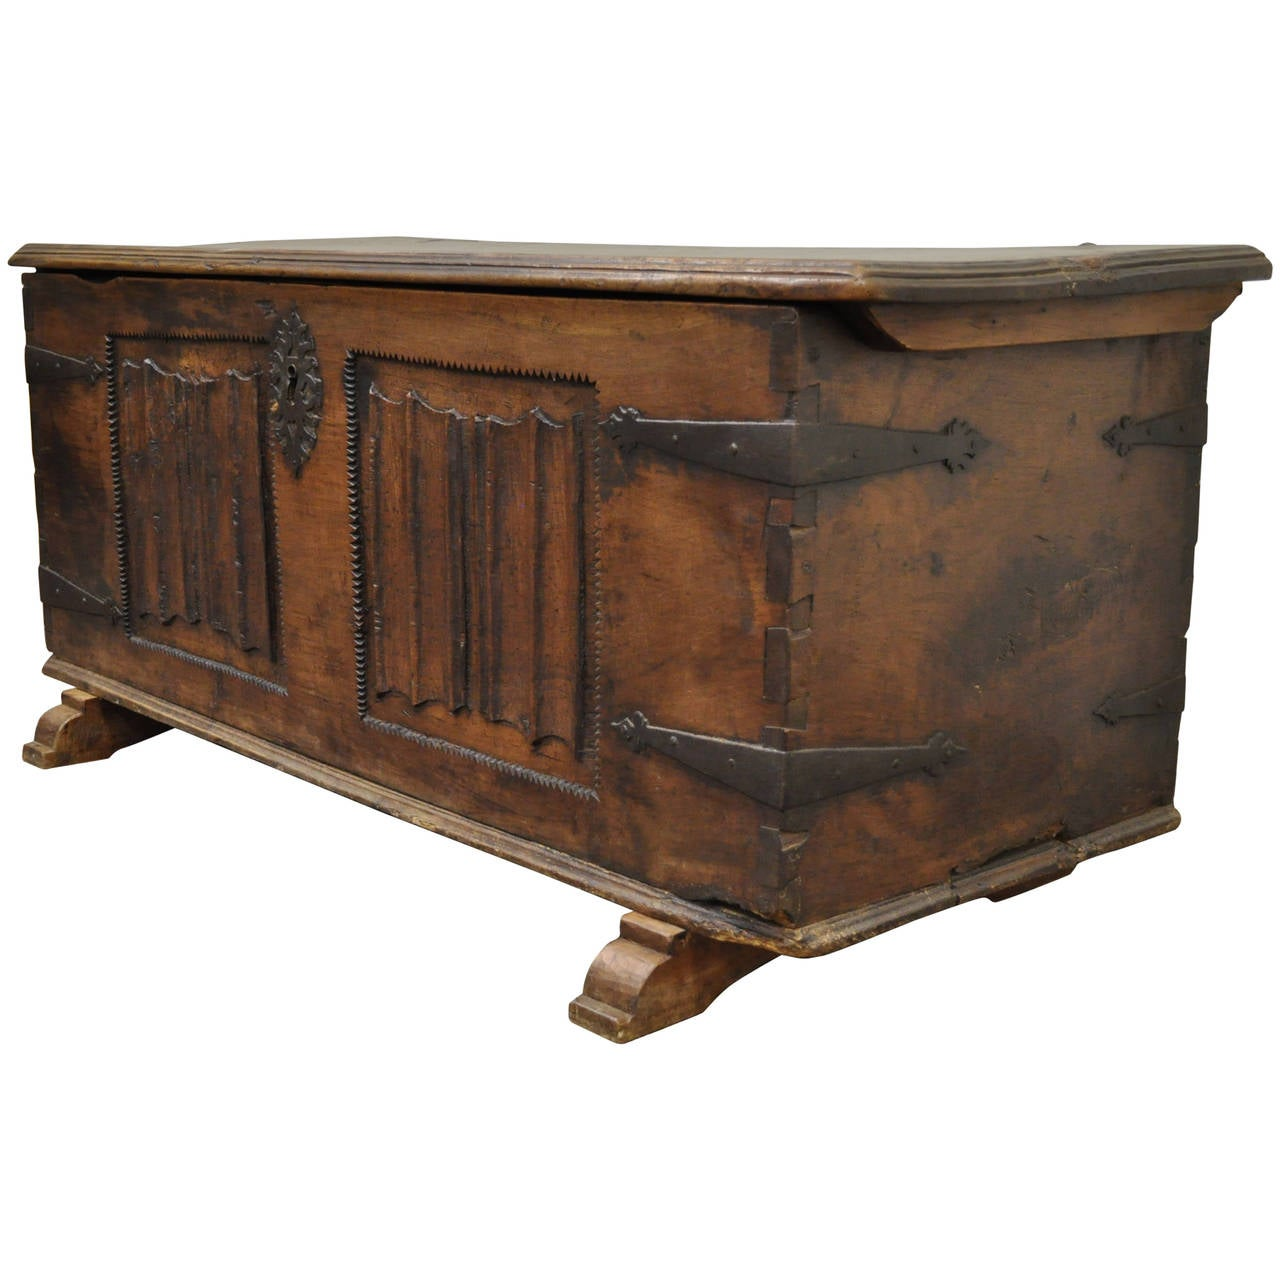 16th century large dovetail joined gothic coffer or blanket chest at 1stdibs